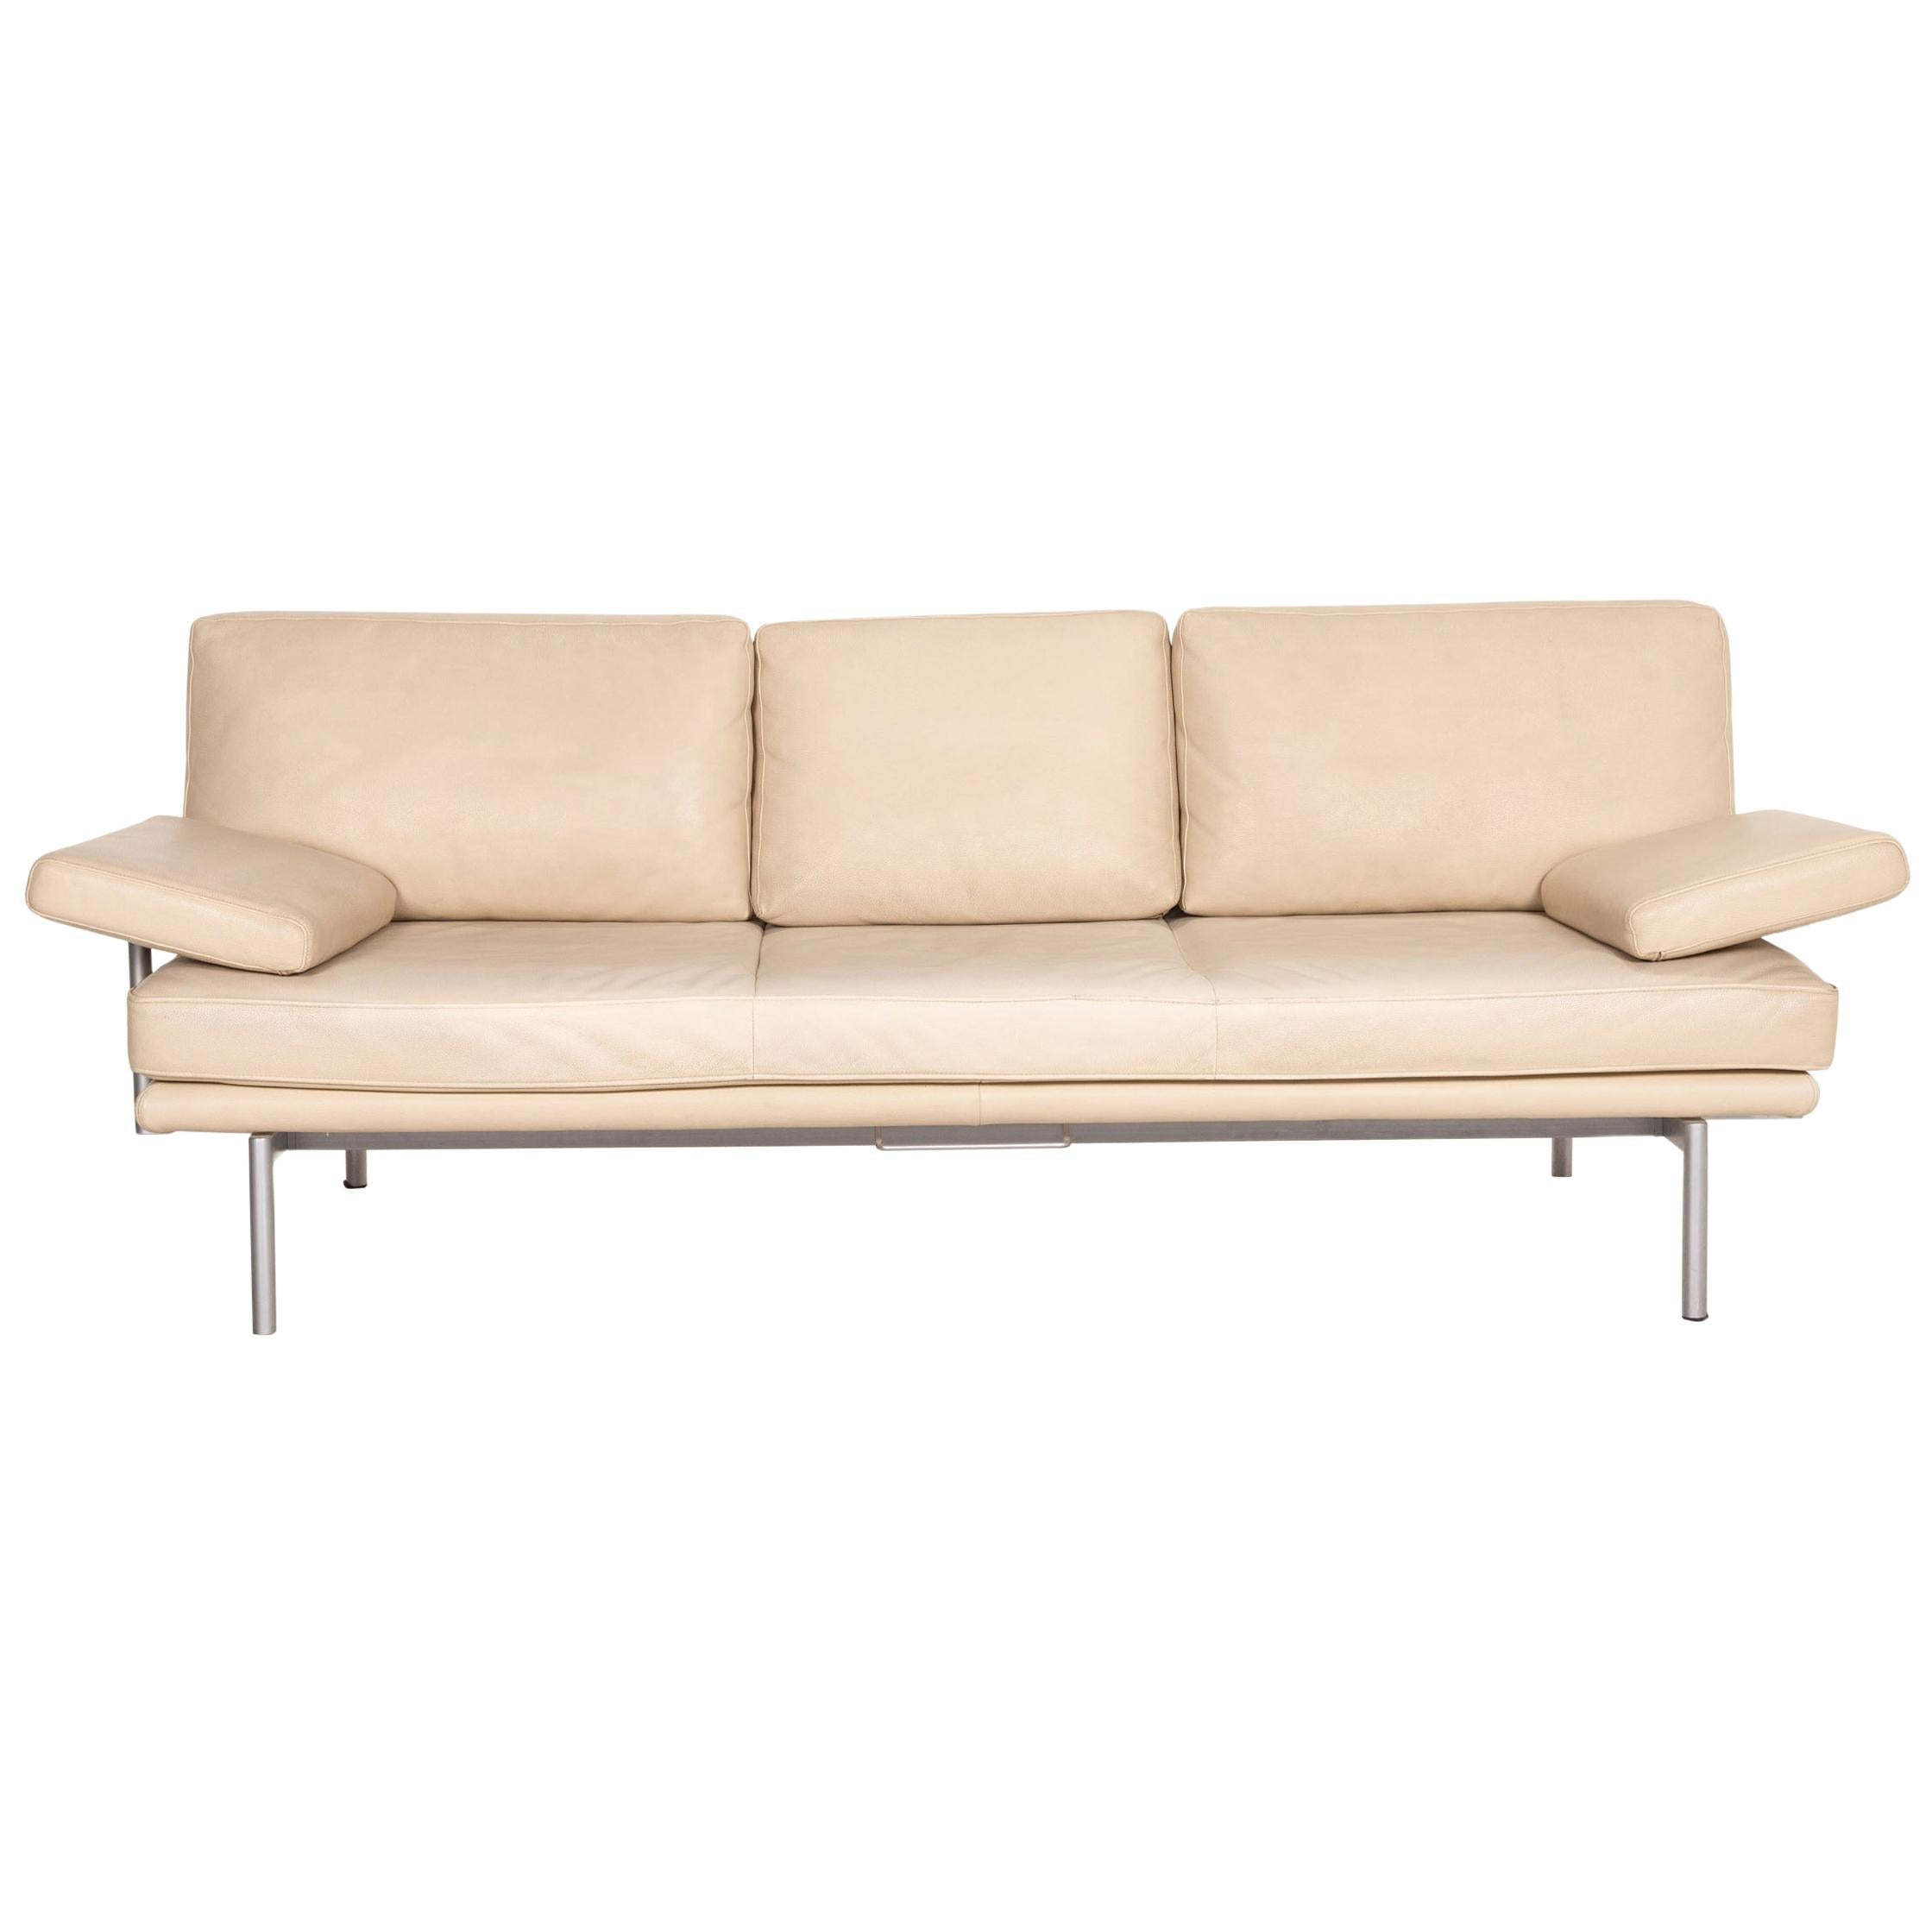 Walter Knoll Living Platform Leather Sofa Beige Three-Seater Function Coucg